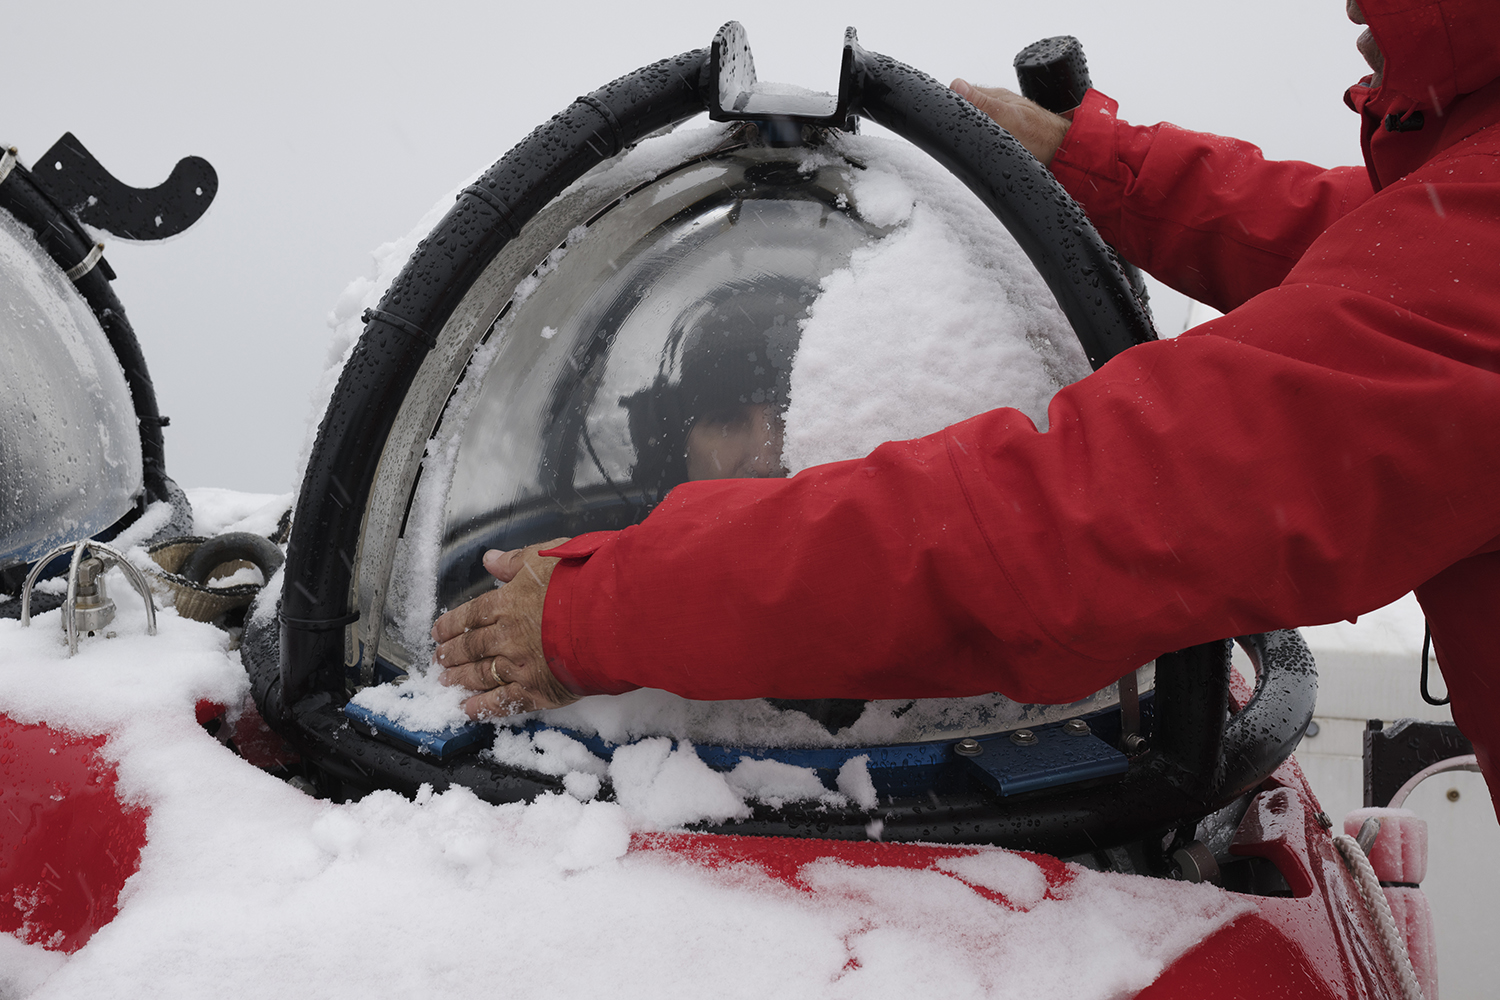 A submersible technichian wiping away the snow from the cockpit for submarine pilot John Hocevar sitting in a two person submarine about to be launched from Greenpeace ship the Arctic Sunrise. Greenpeace is conducting submarine-based scientific research to strengthen the proposal to create the largest protected area on the planet, an Antarctic Ocean Sanctuary.